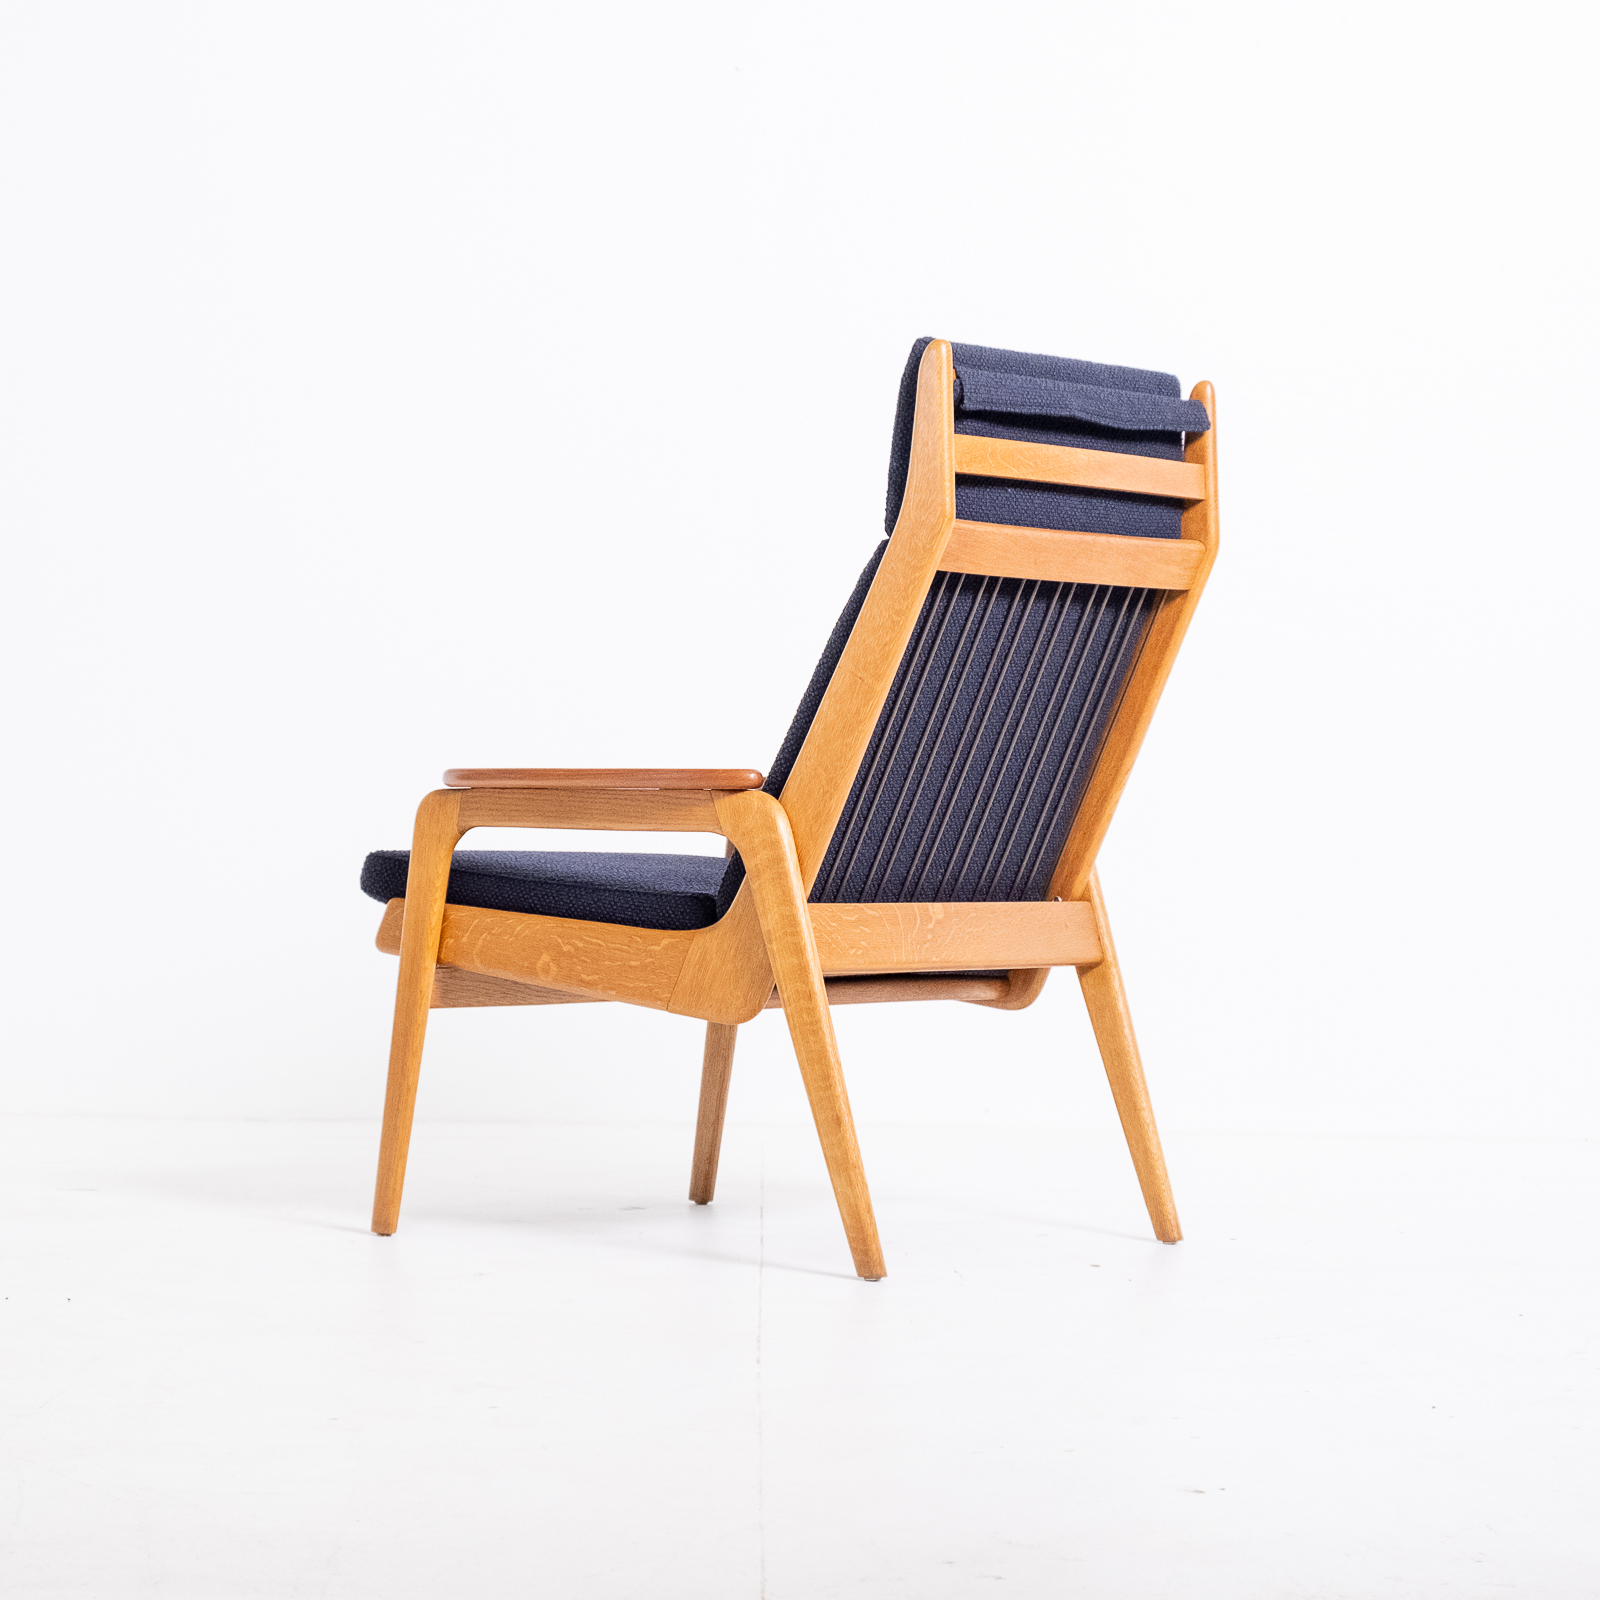 Lotus Armchair By Rob Parry For De Ster Gelderland, 1950s, The Netherlands 03